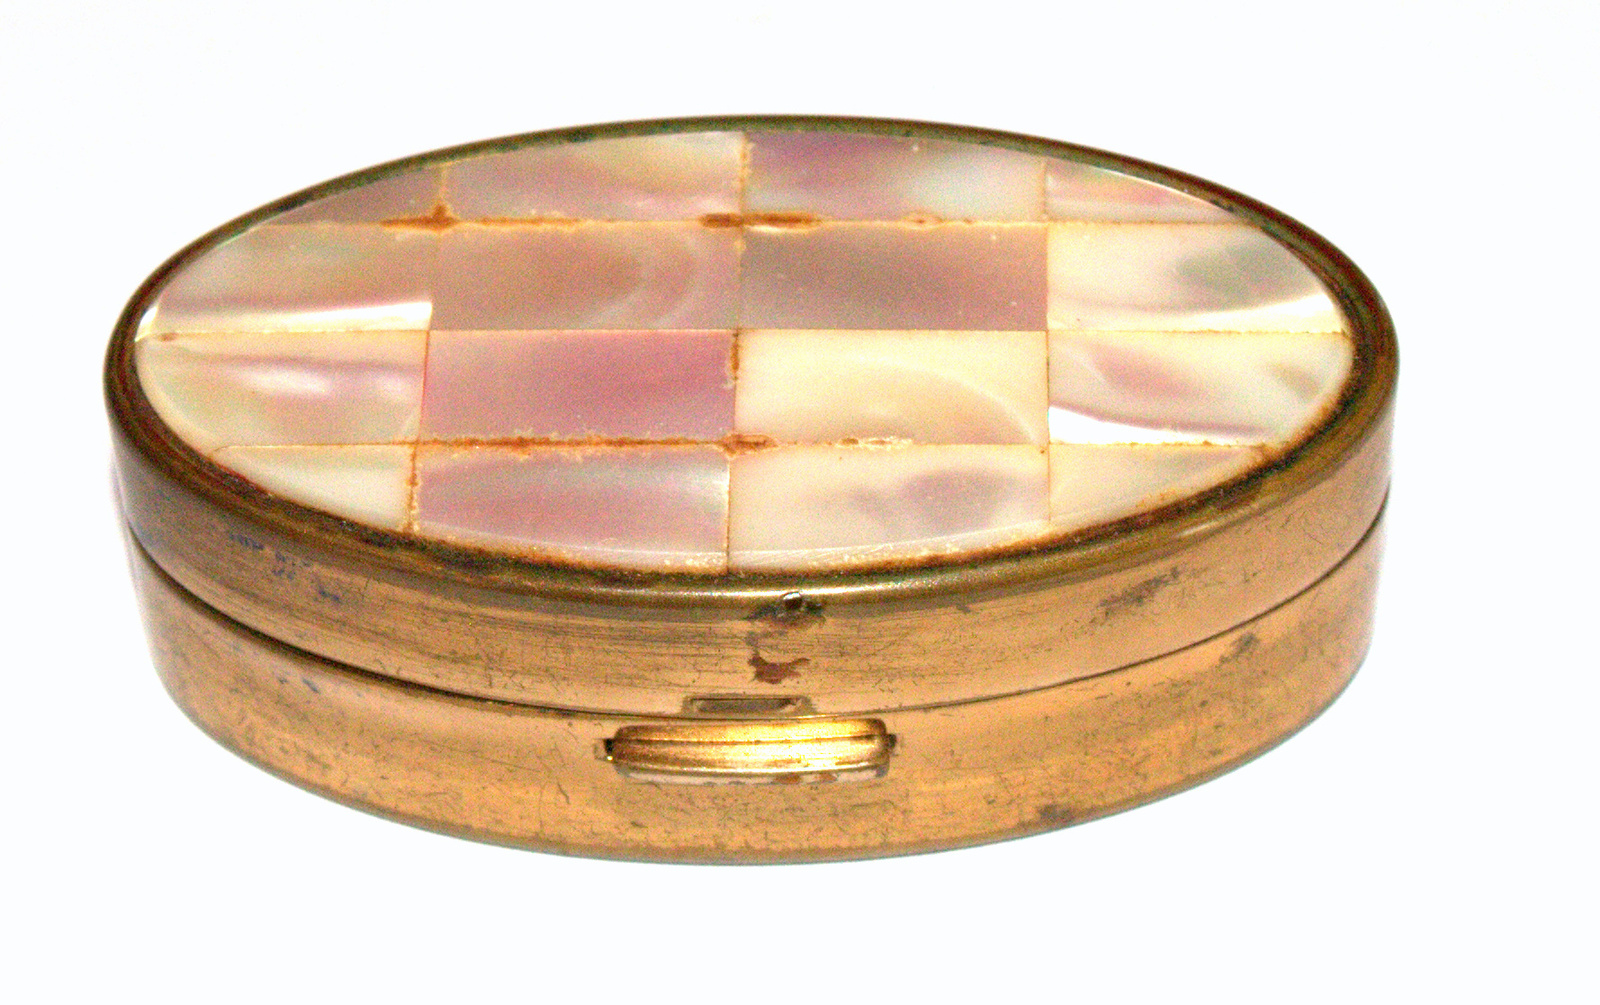 Vintage Max Factor Trinket Snuff Pill Lipstick Box Brass Mother of Pearl